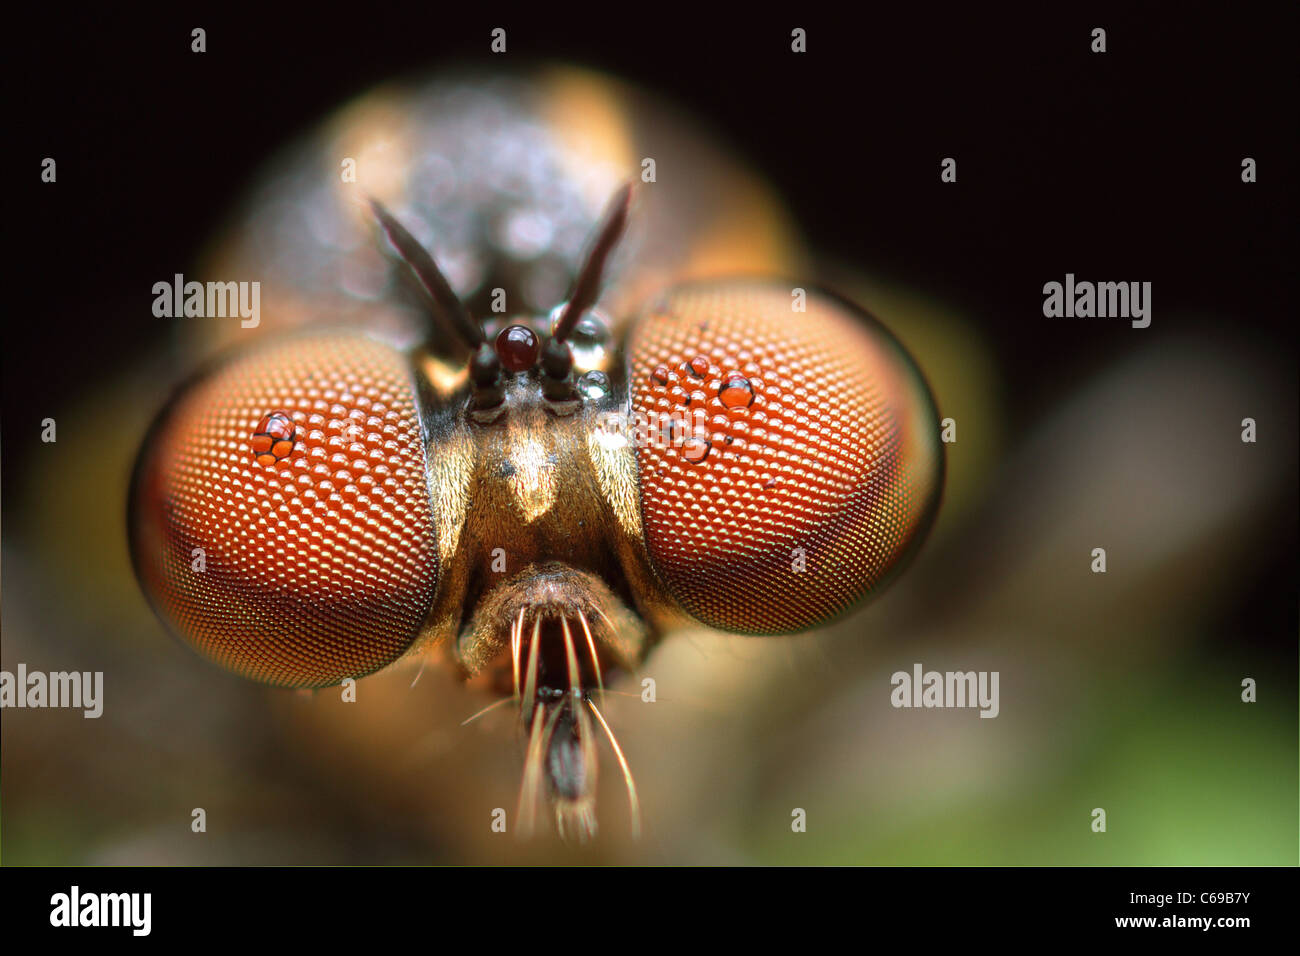 Robber Fly, Holcocephala fusca Photo Stock